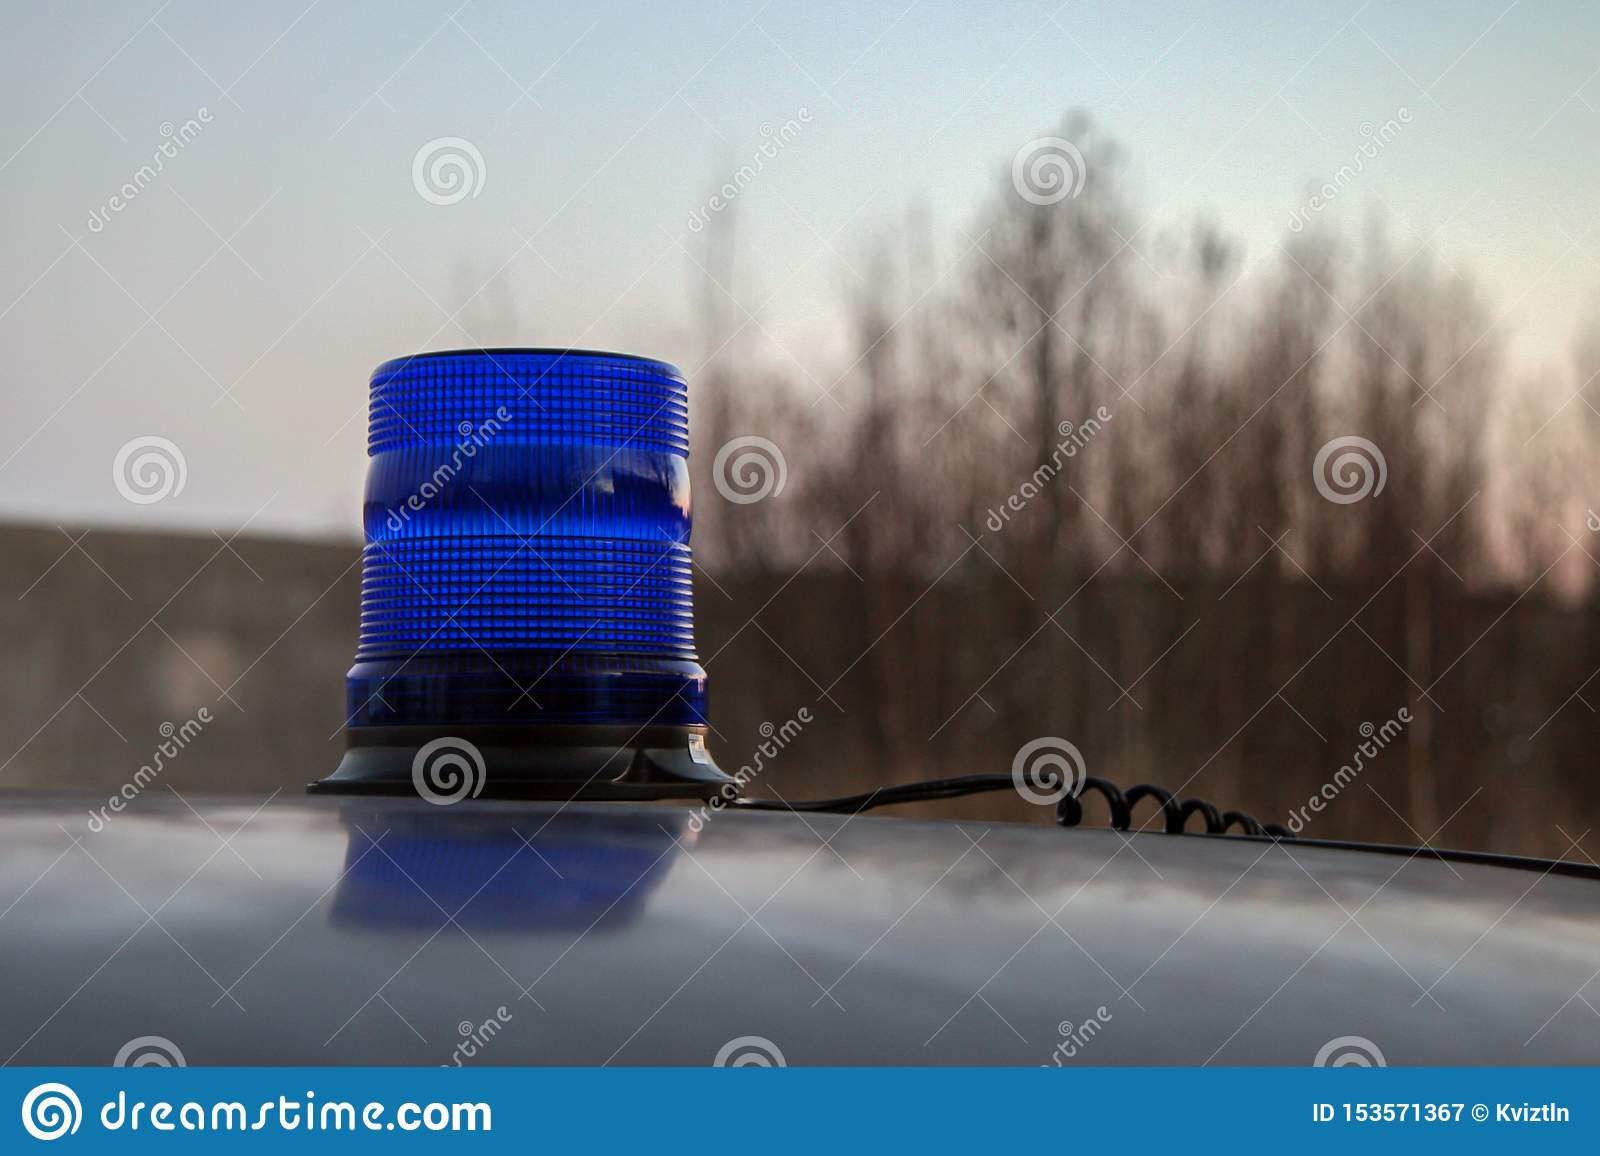 Disabled blue flasher on the roof of the car.